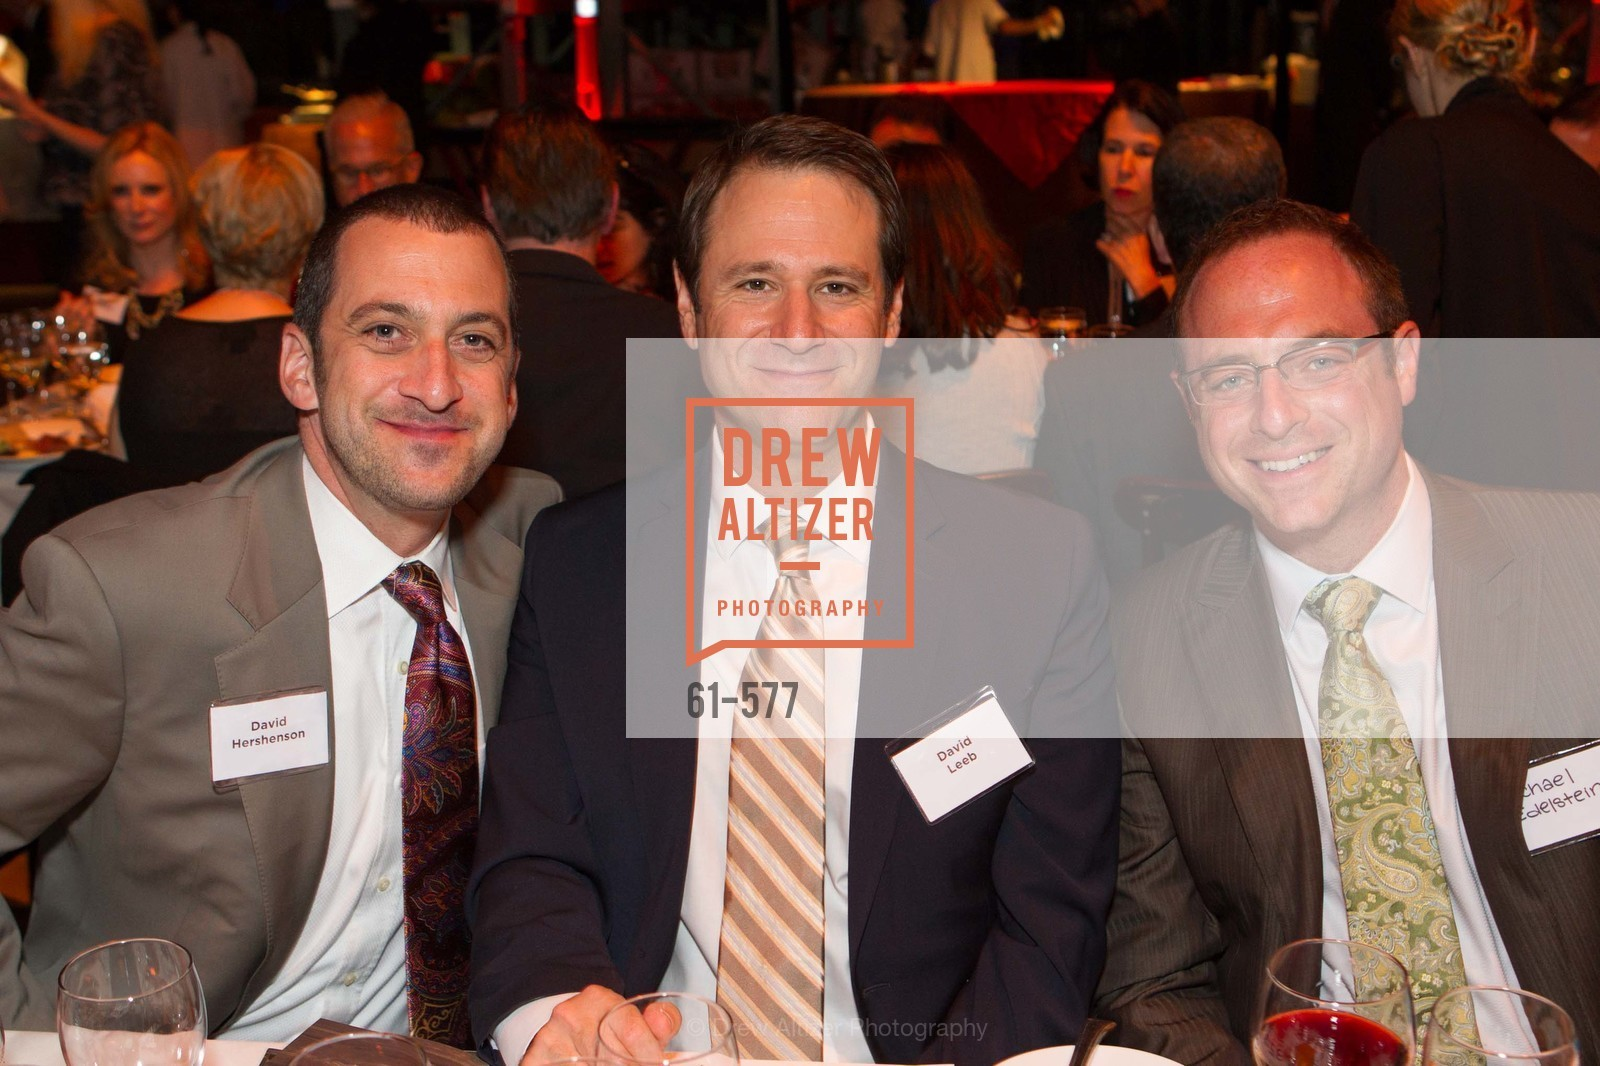 David Hershenson, David Leeb, Michael Edelstein, SF-MARIN FOOD BANK One Big Table Gala, US, September 27th, 2014,Drew Altizer, Drew Altizer Photography, full-service agency, private events, San Francisco photographer, photographer california